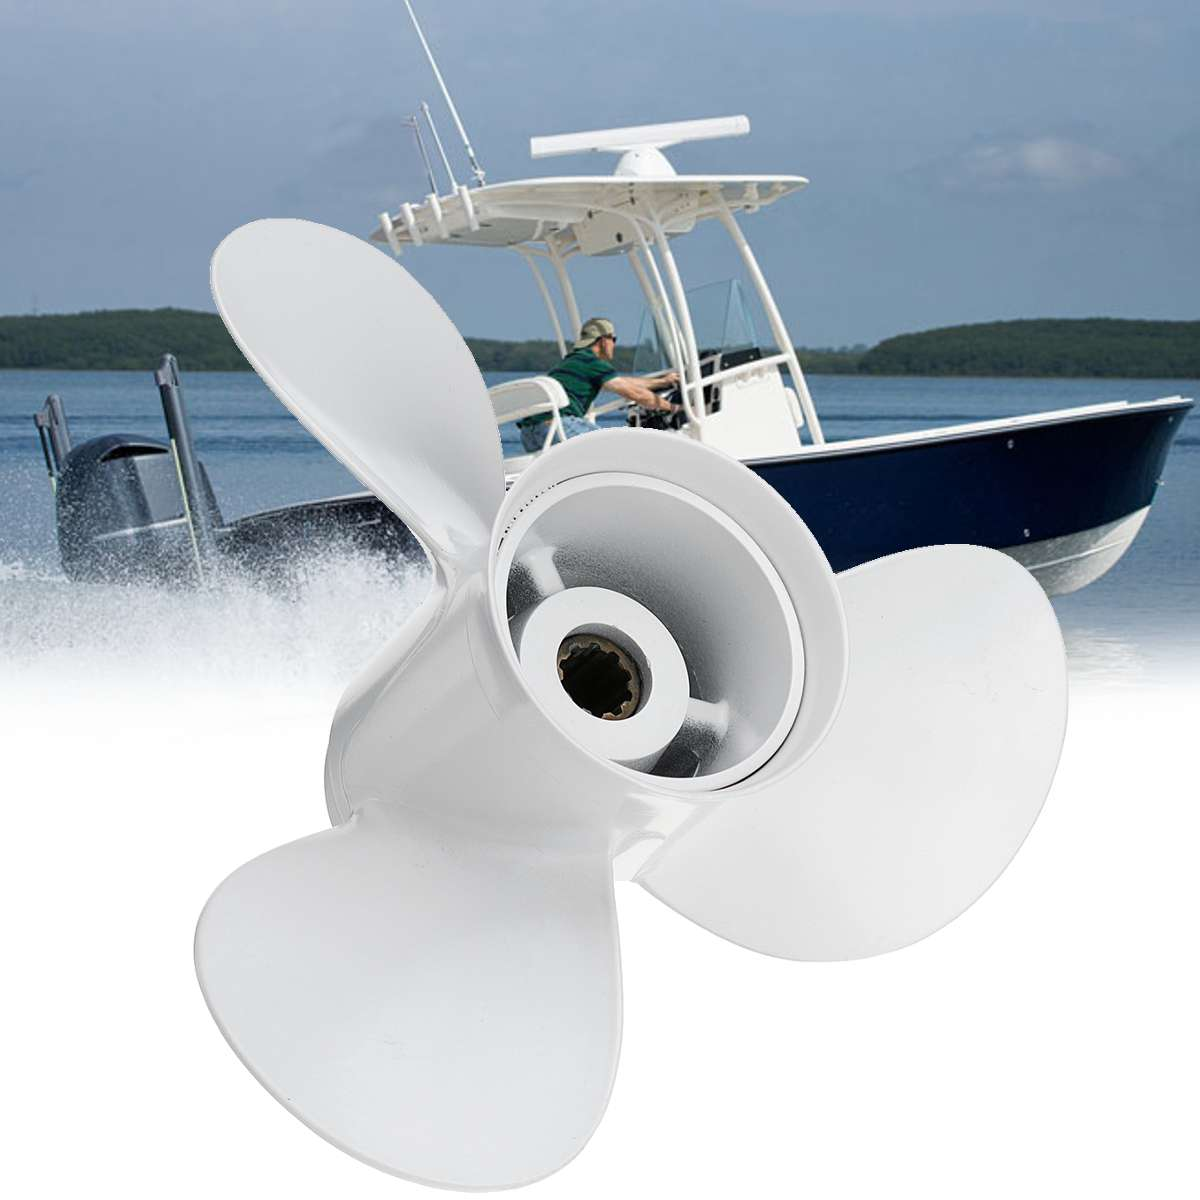 664-45952-00-EL 9 7/8 x 14 Aluminum Boat Outboard Propeller For Yamaha 20-30HP White 10 Spline Tooth 3 Blades R Rotation664-45952-00-EL 9 7/8 x 14 Aluminum Boat Outboard Propeller For Yamaha 20-30HP White 10 Spline Tooth 3 Blades R Rotation